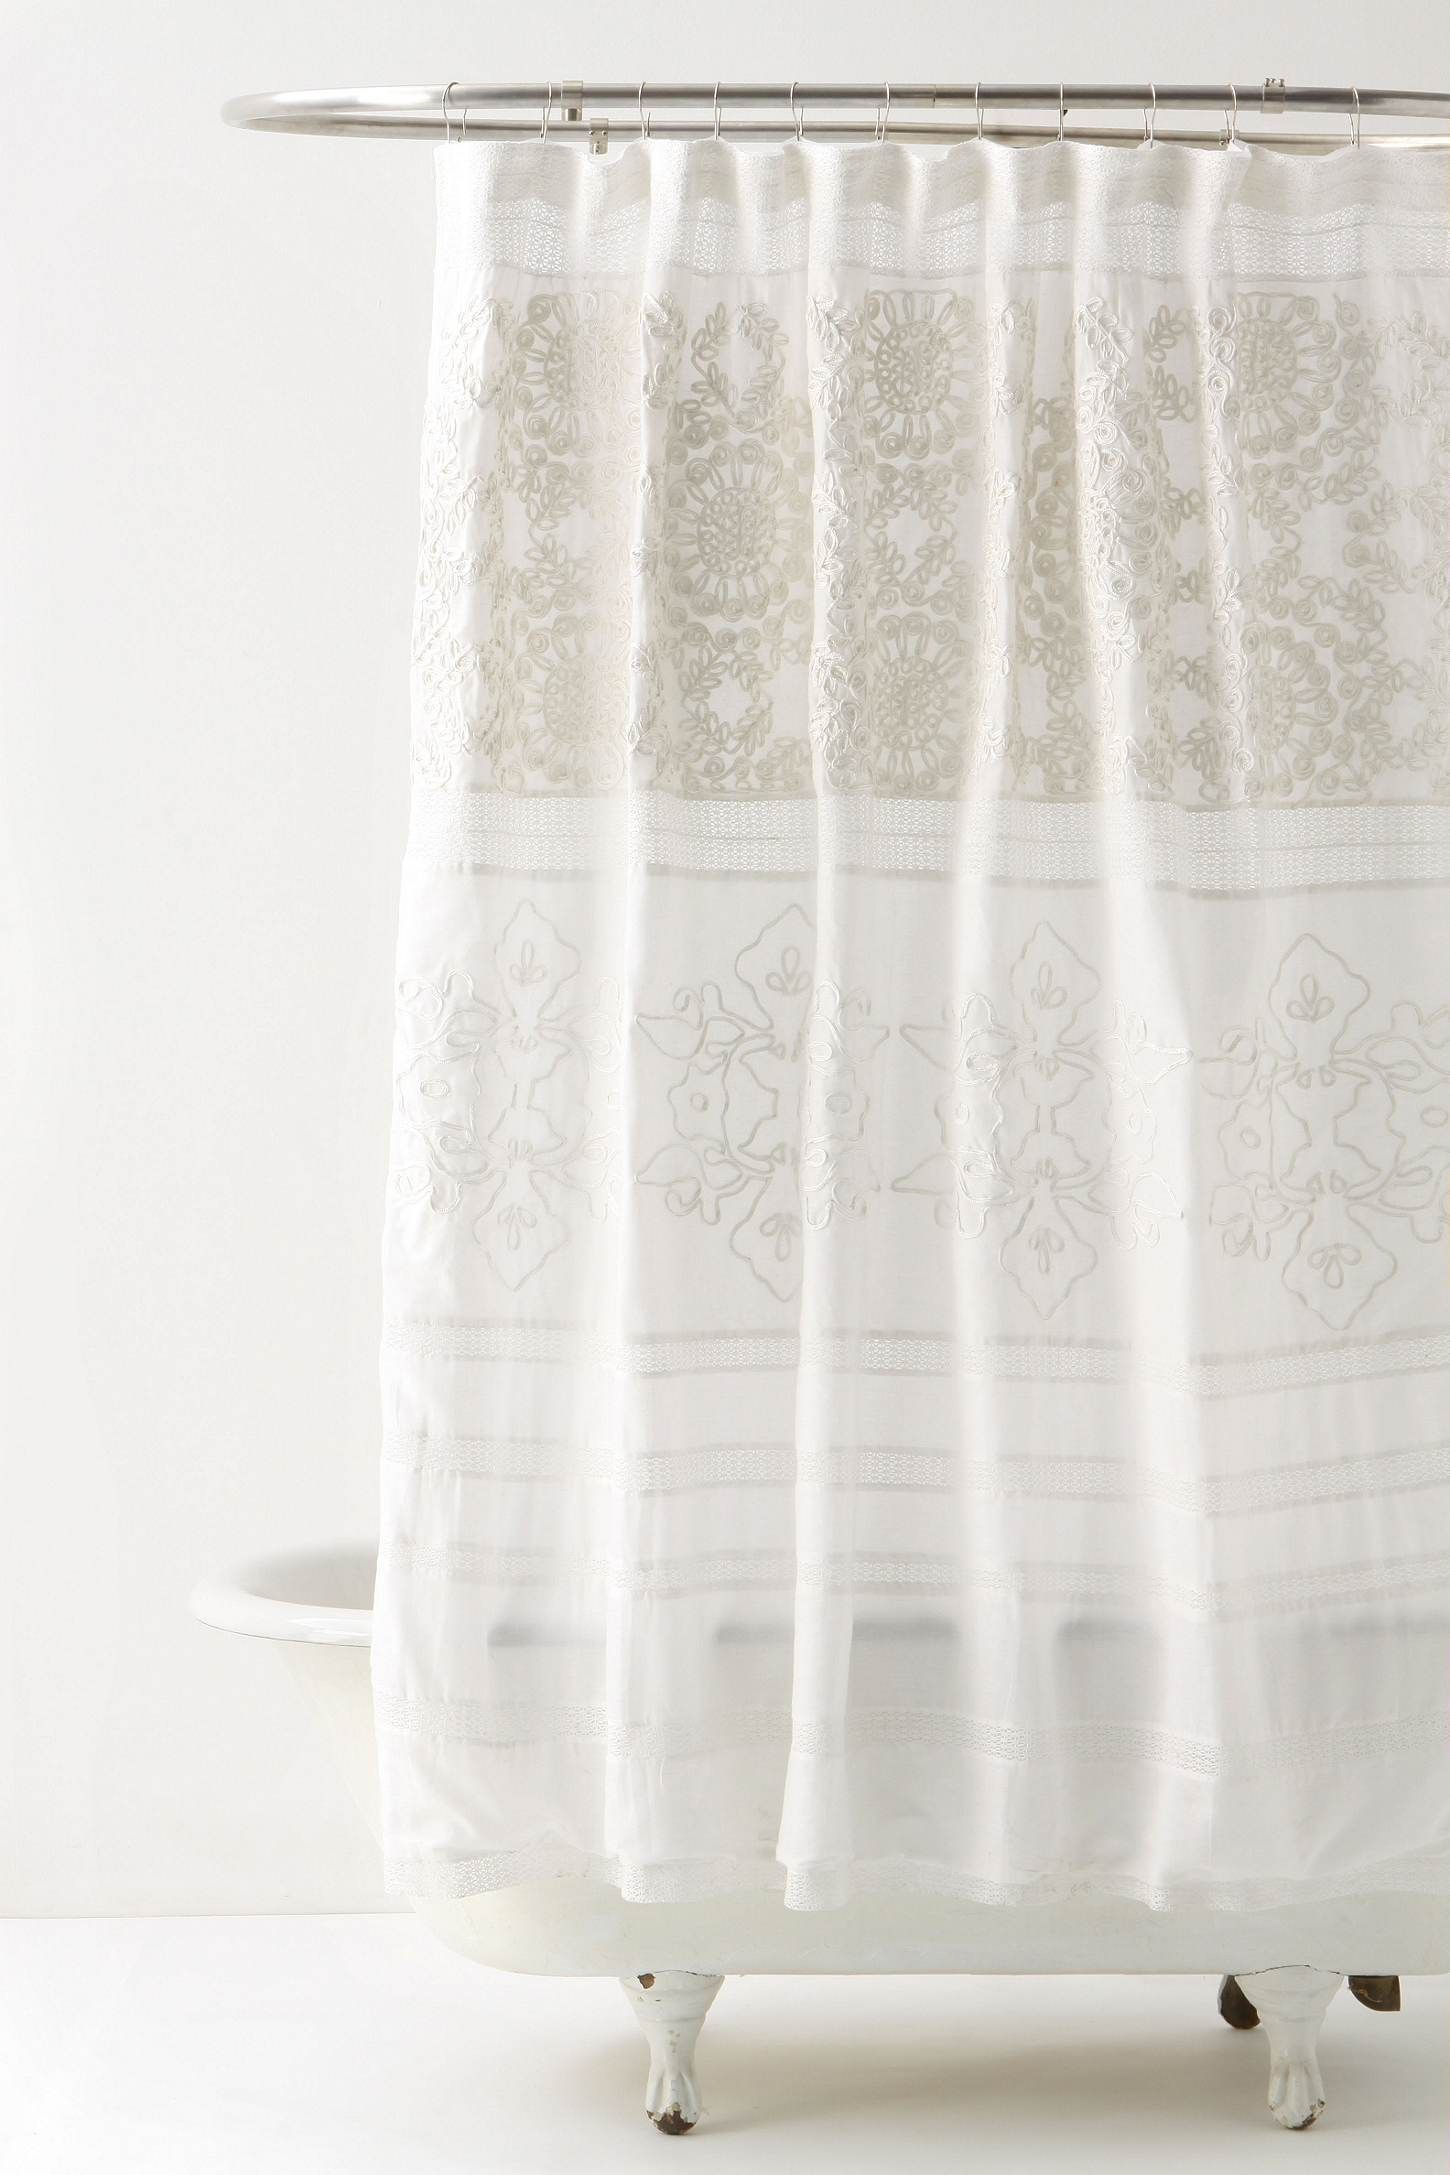 Anthropologie for the home pinterest bathroom curtains and shower